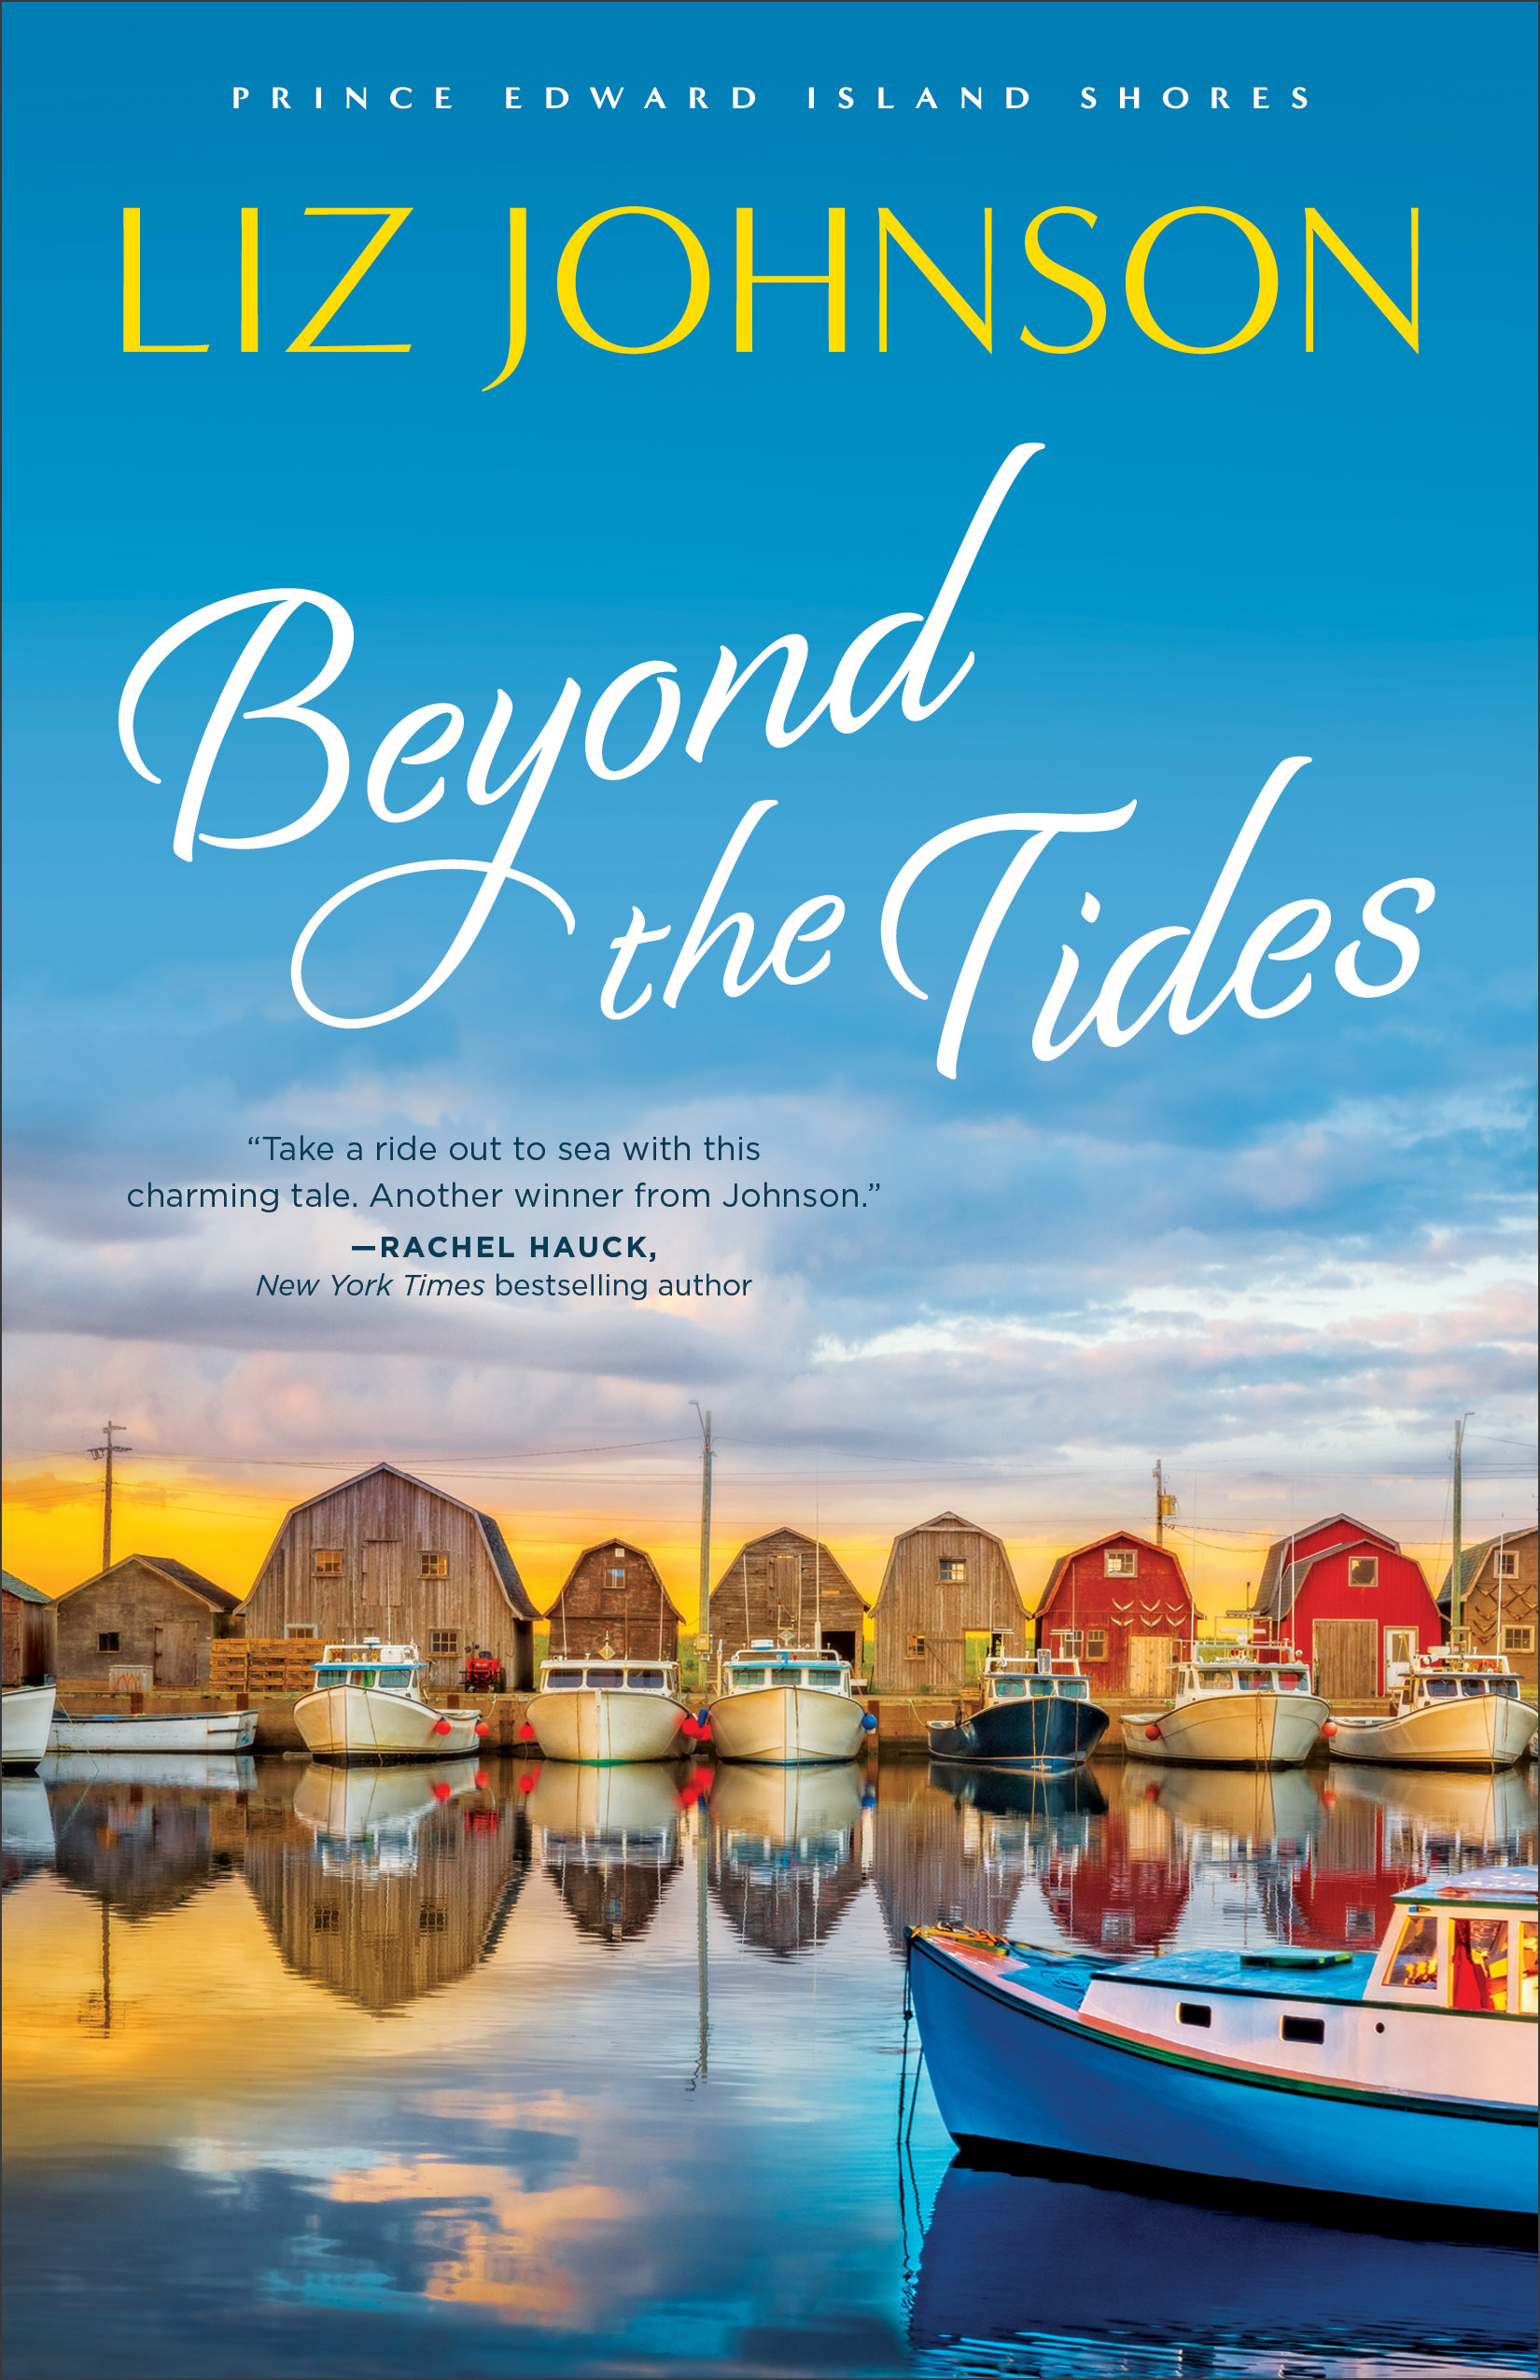 Beyond the Tides (Prince Edward Island Shores Book #1)